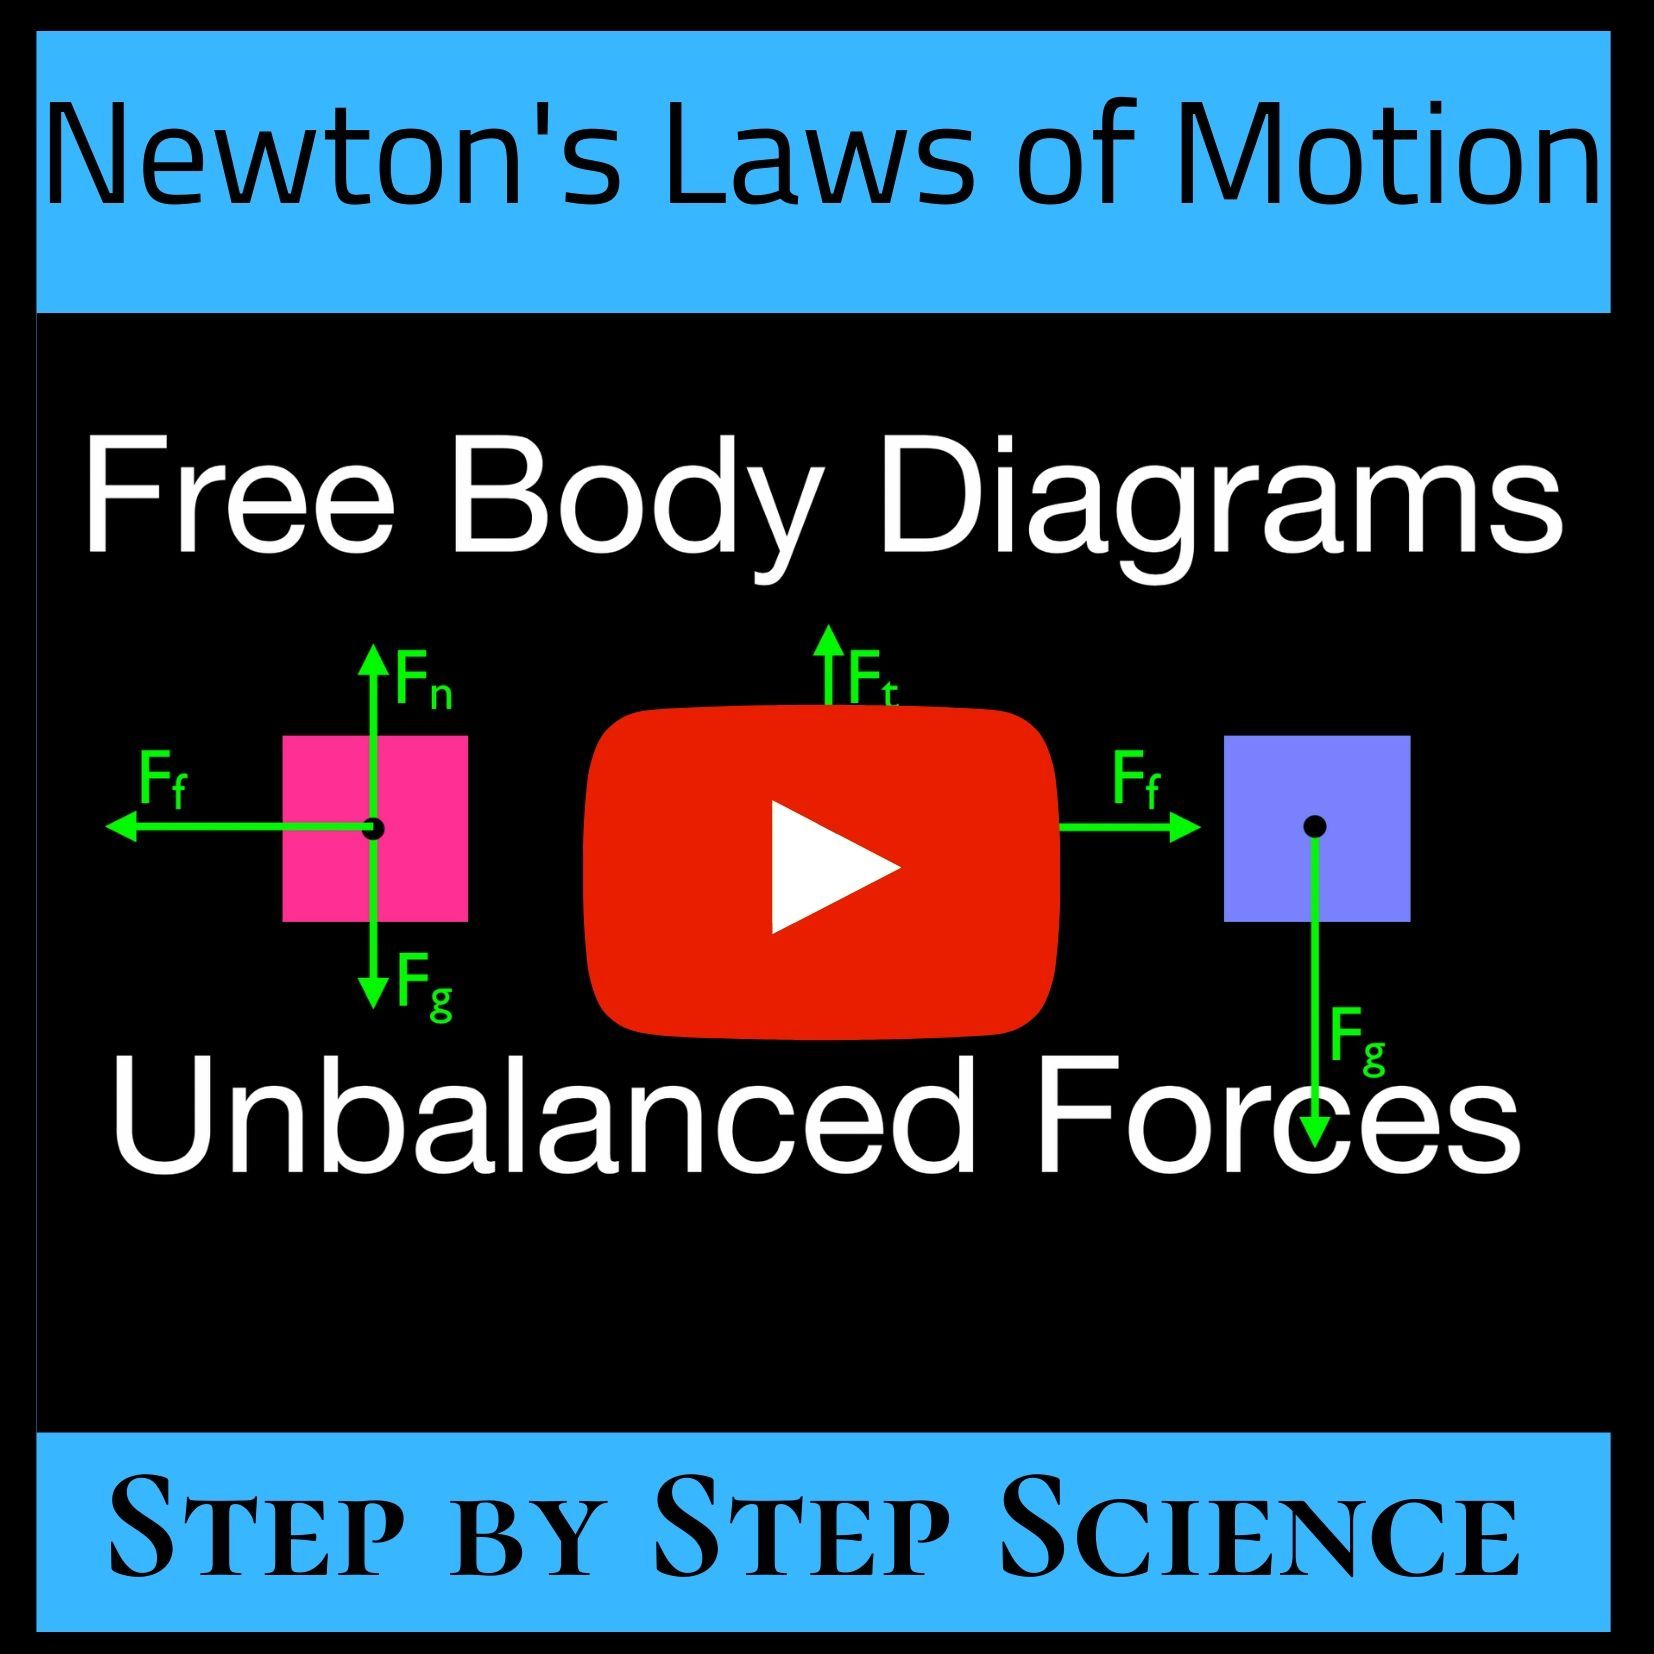 Newton S 2nd Law Free Body Diagrams Objects With Unbalanced Forces Net Force Greater Than Zero